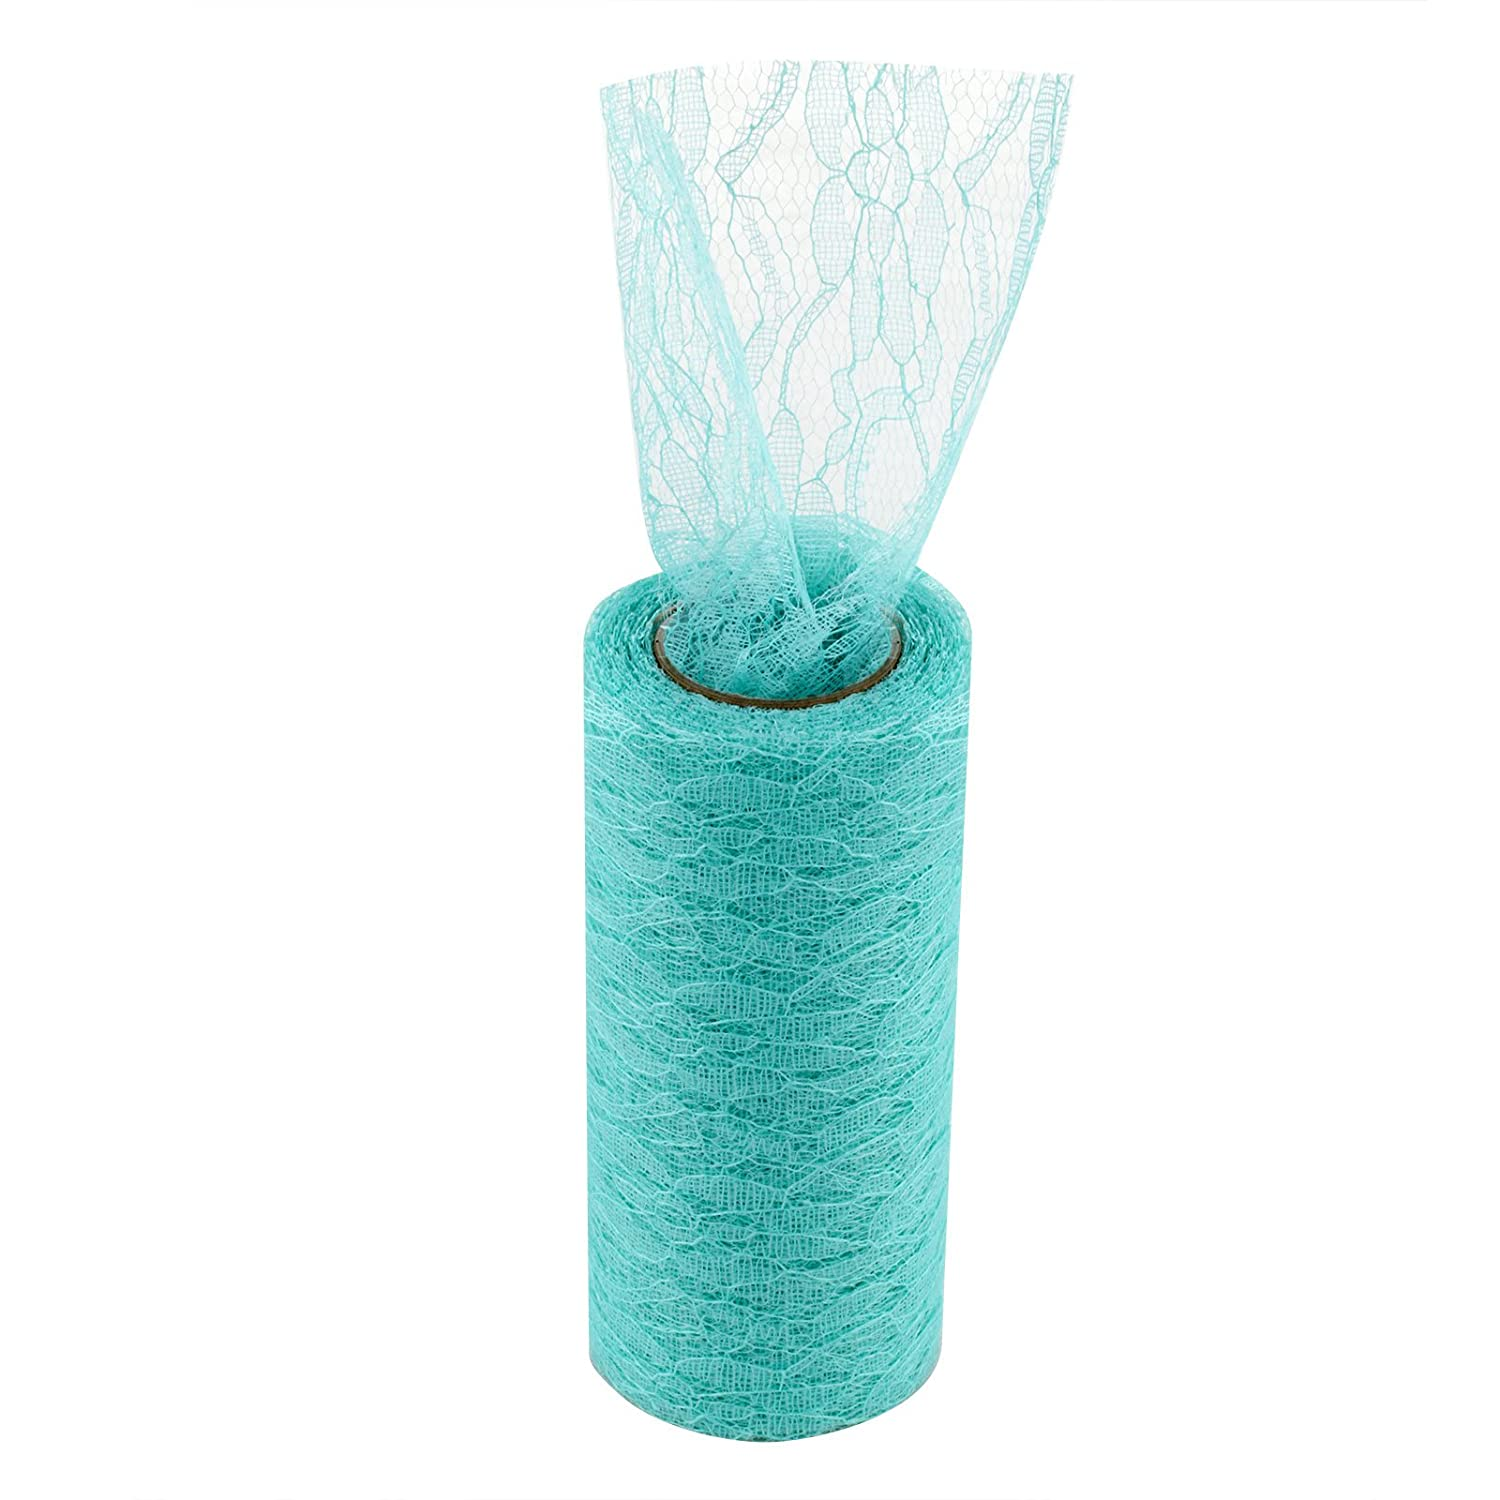 vLoveLife Teal Green 6x 10Yards Vintage Lace Roll Fabric Netting Nylon Tulle Roll For Tutu Skirt Table Runner Chair Sash DIY Material Wedding Party Art Sewing Decor